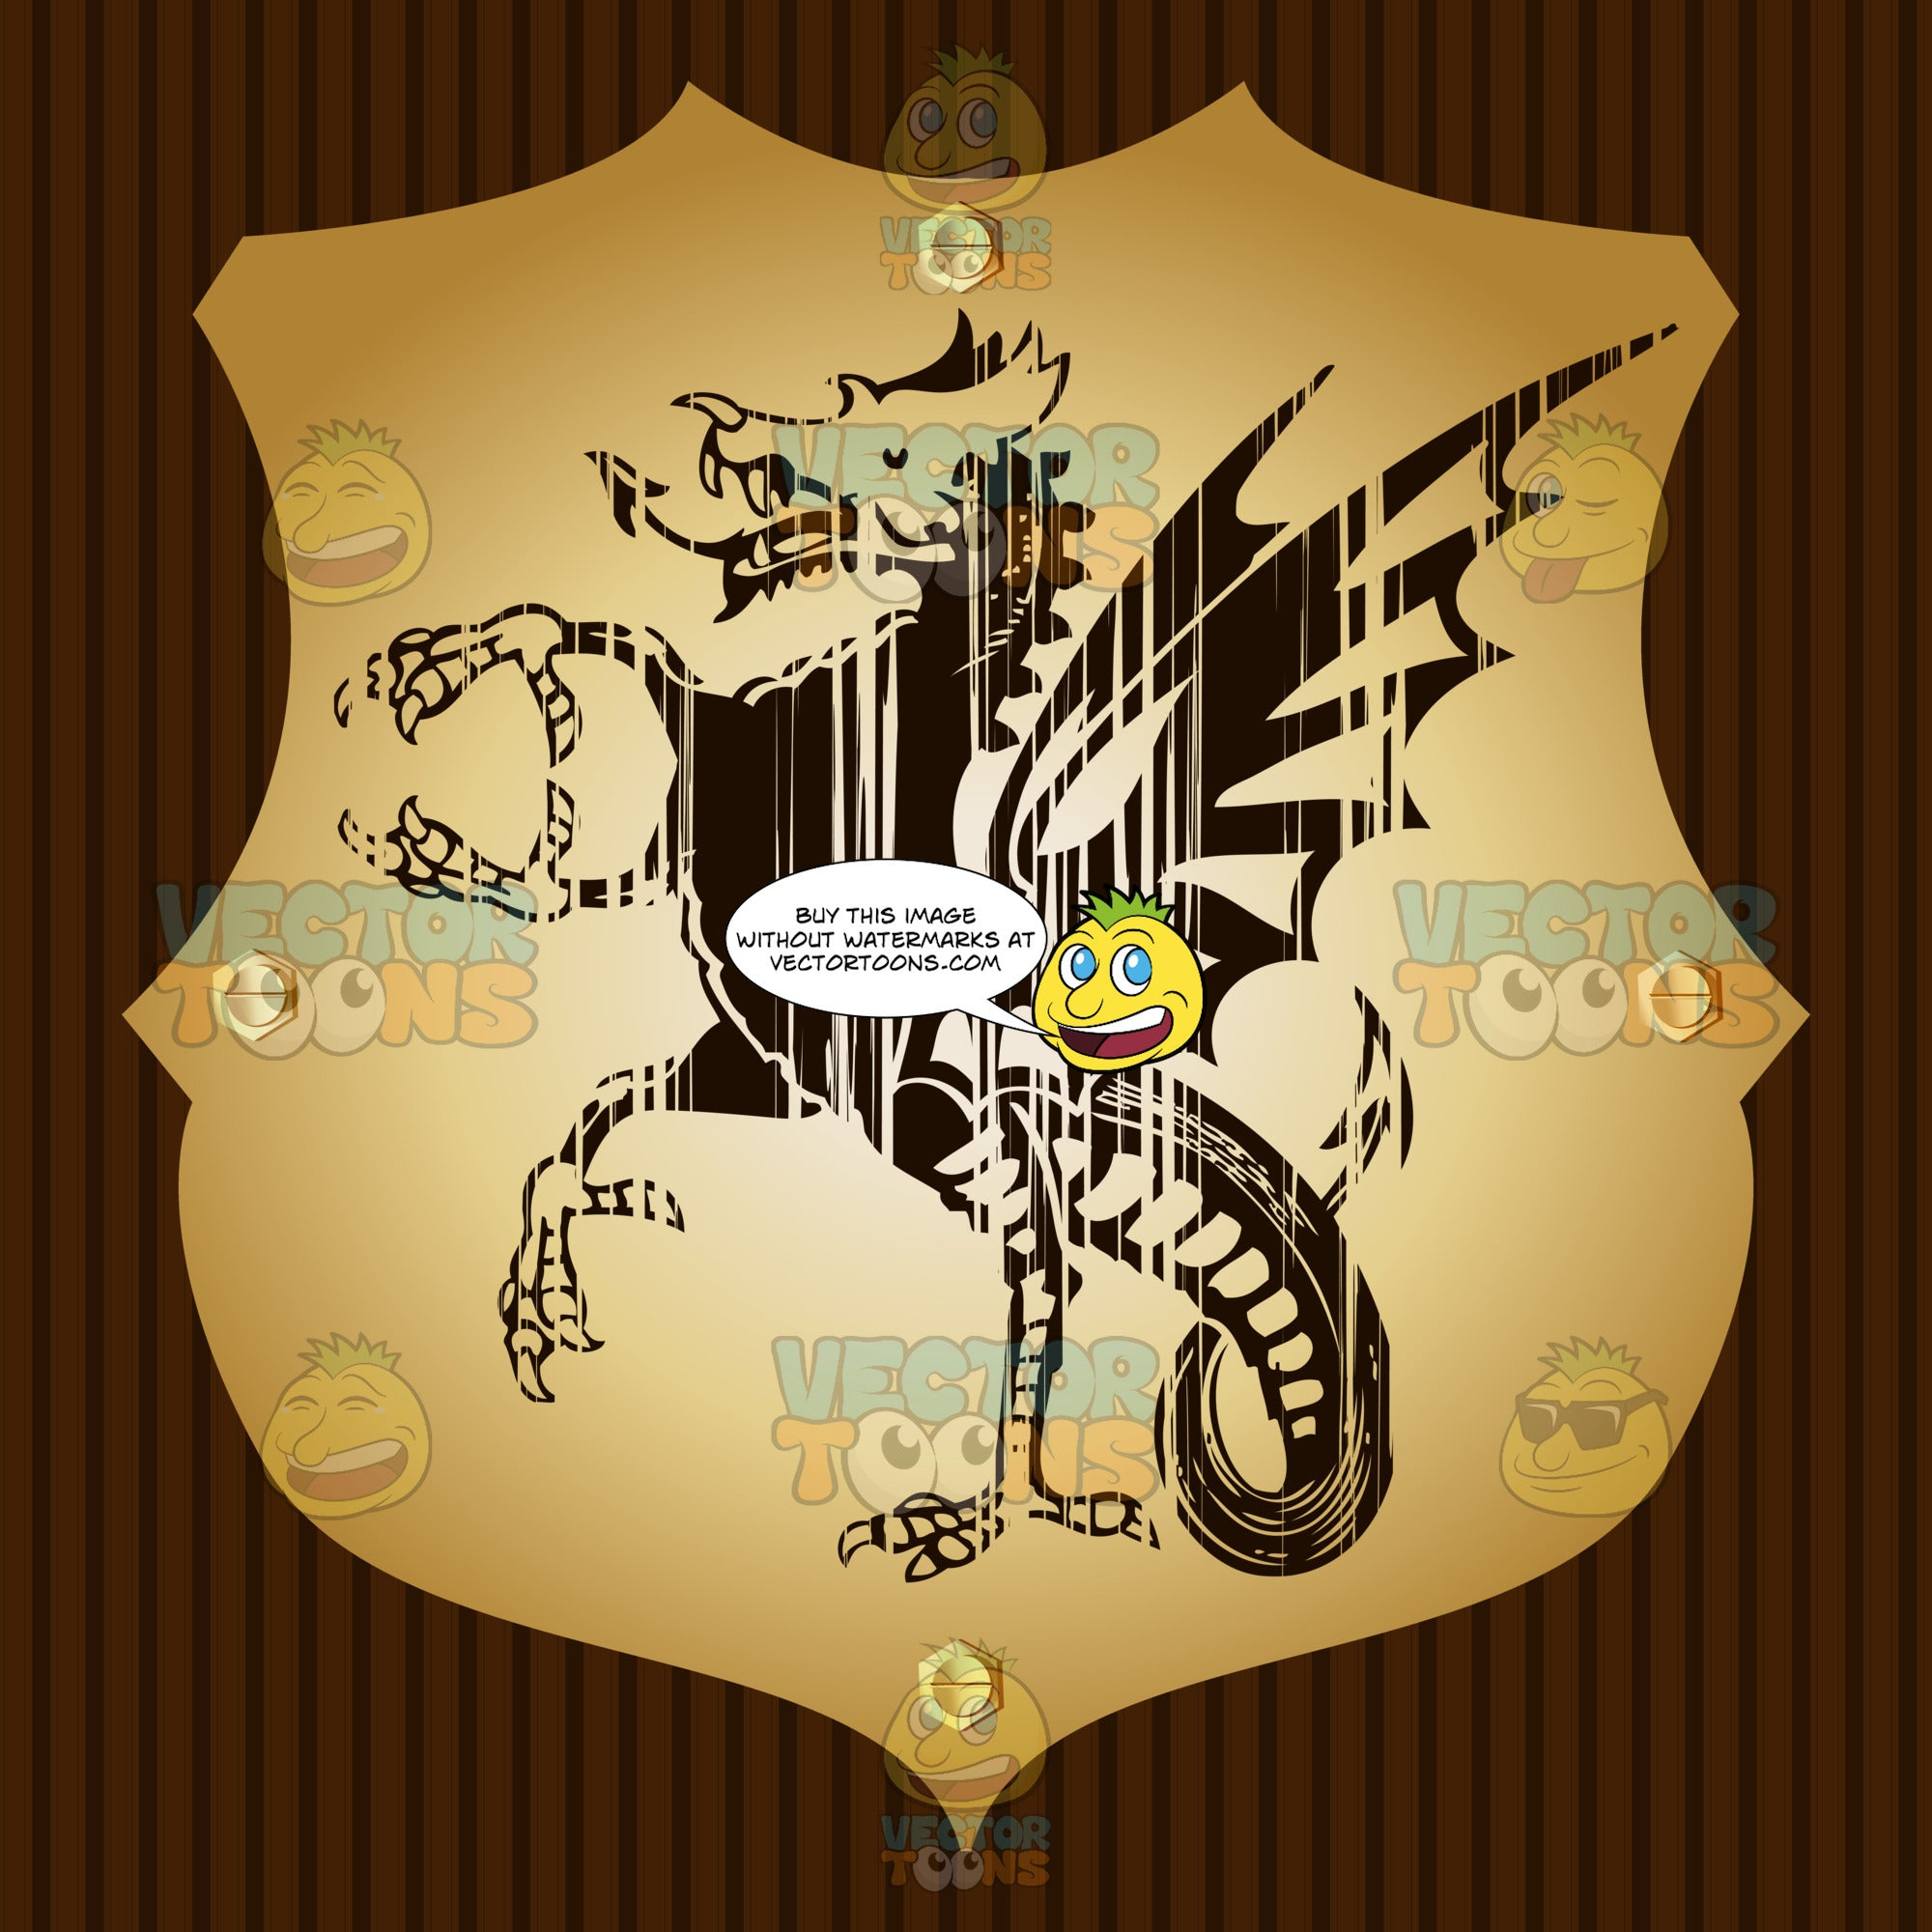 Winged Dragon With Talons For Hands And Feet Coat Of Arms On Gold Plate Screwed On Wooden Brown Background